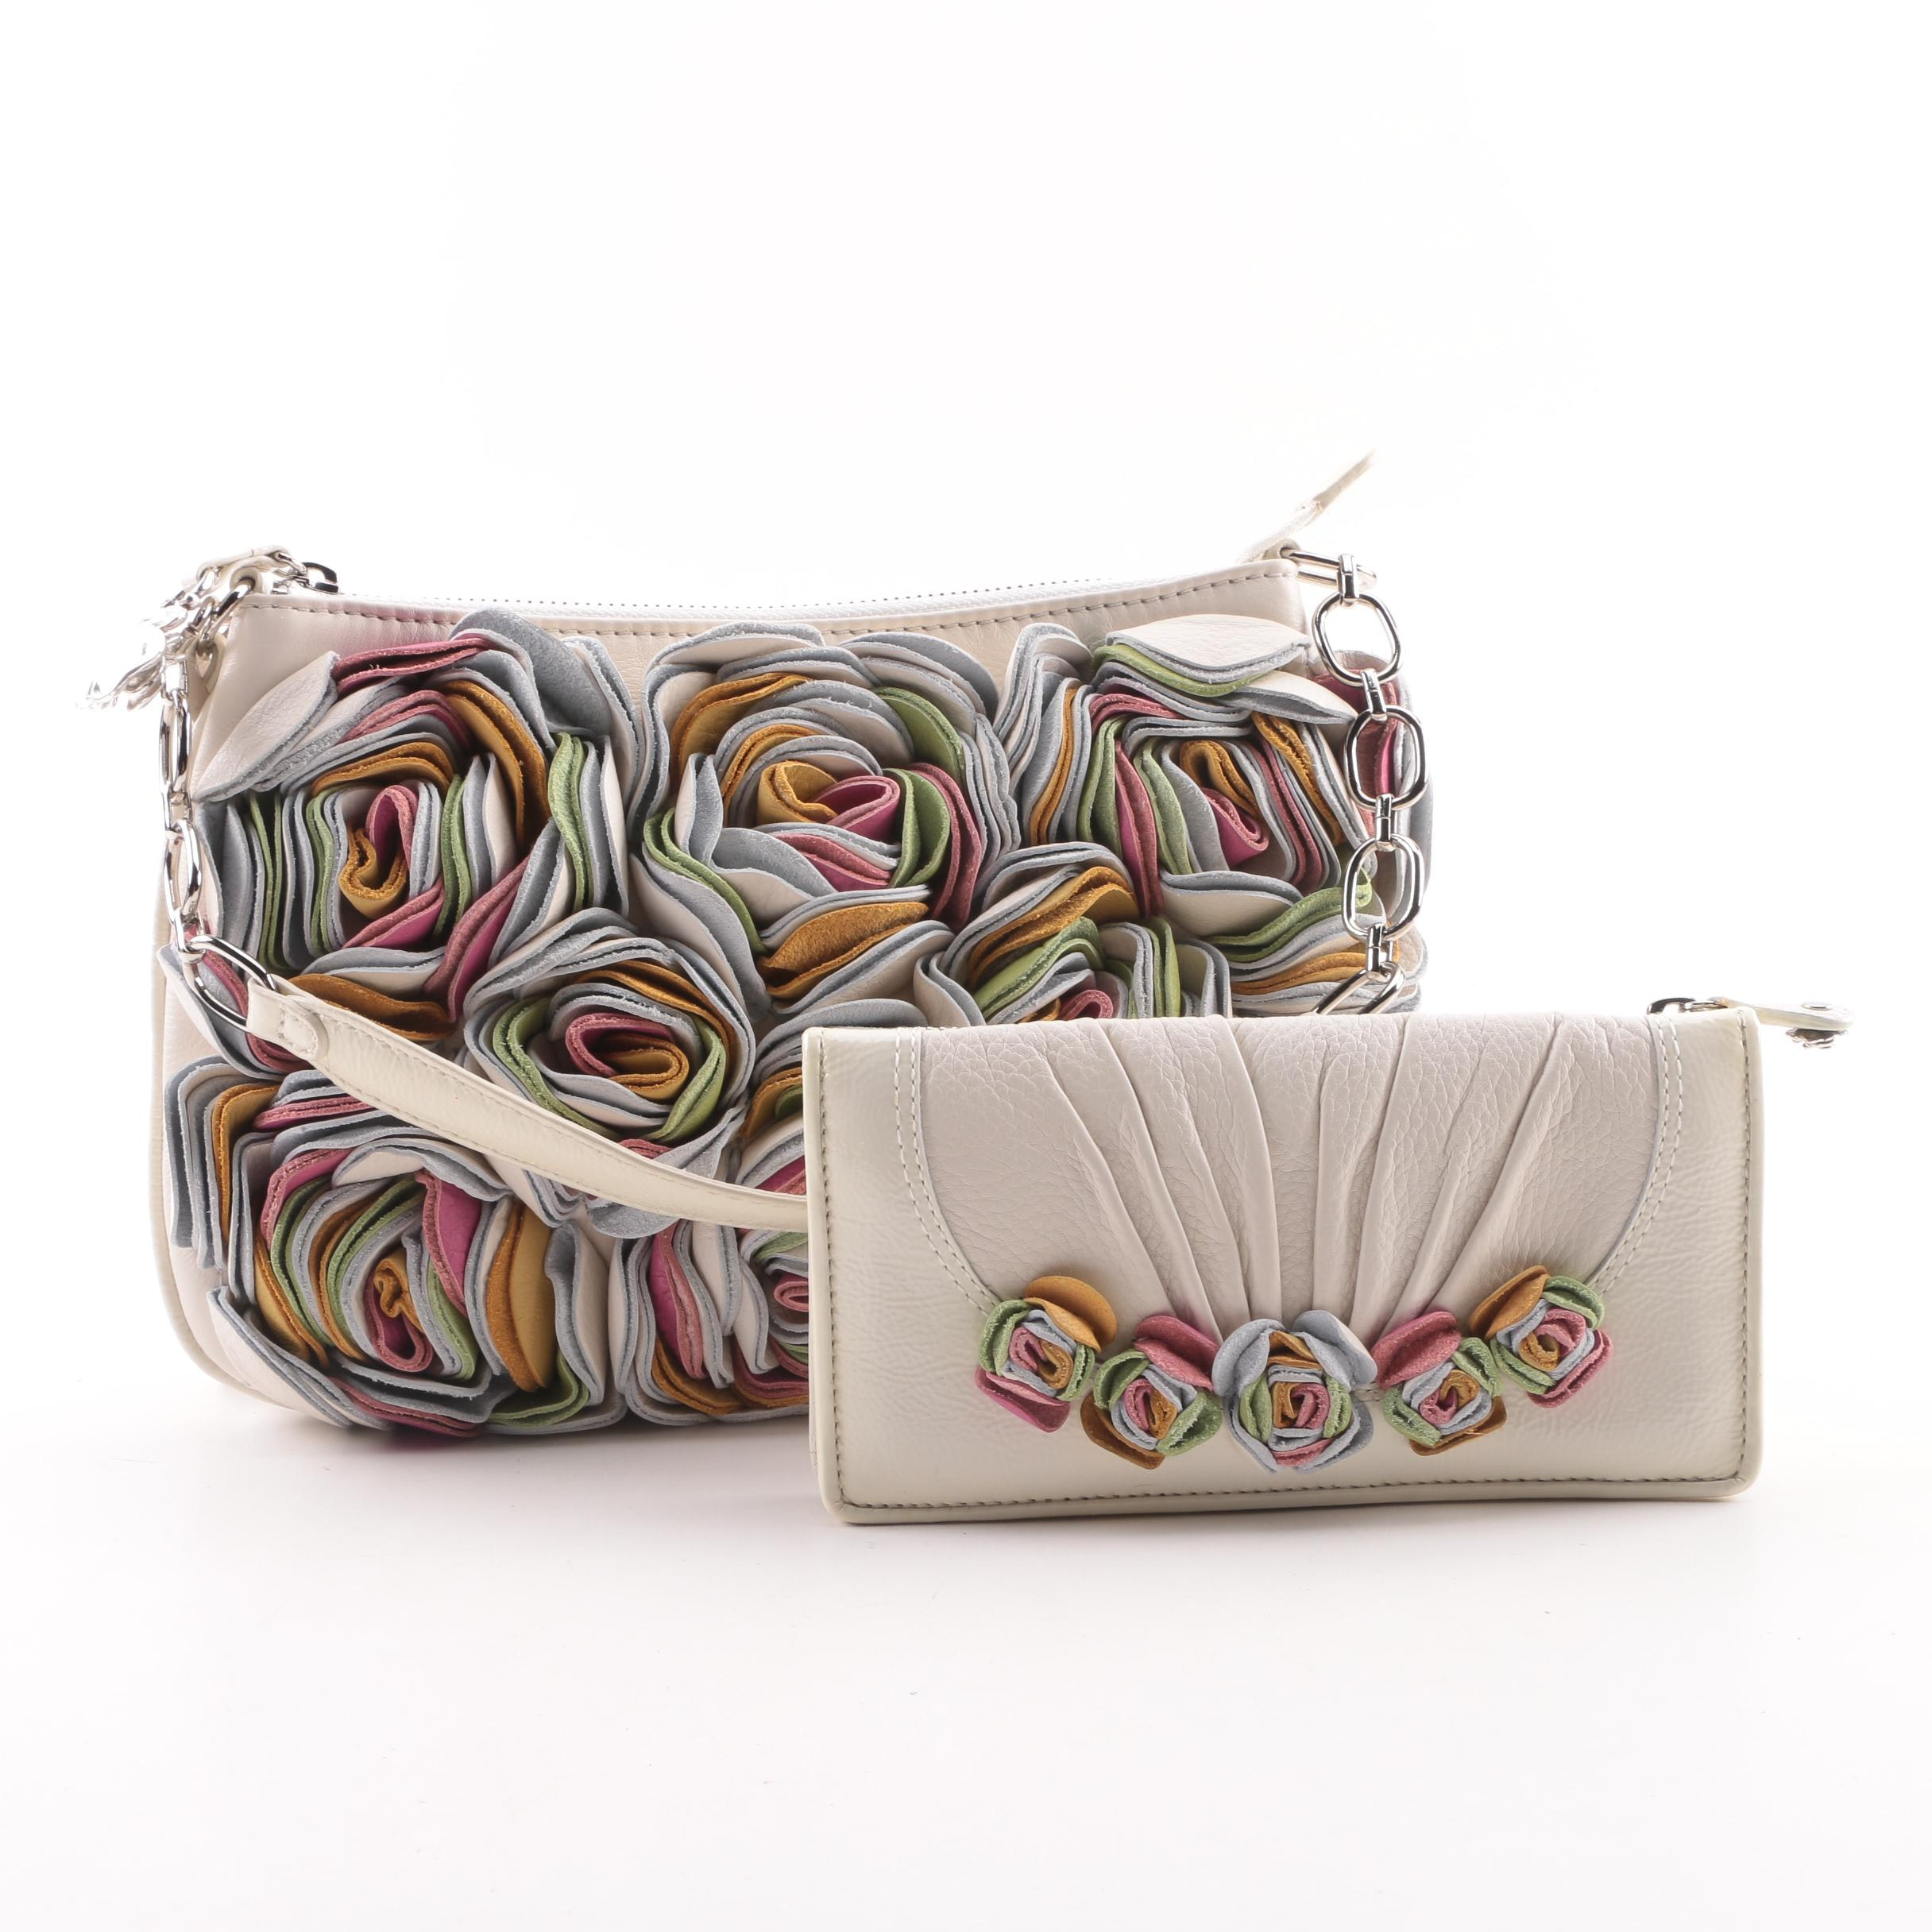 Brighton Multicolor Floral Cream Leather Handbag and Wallet